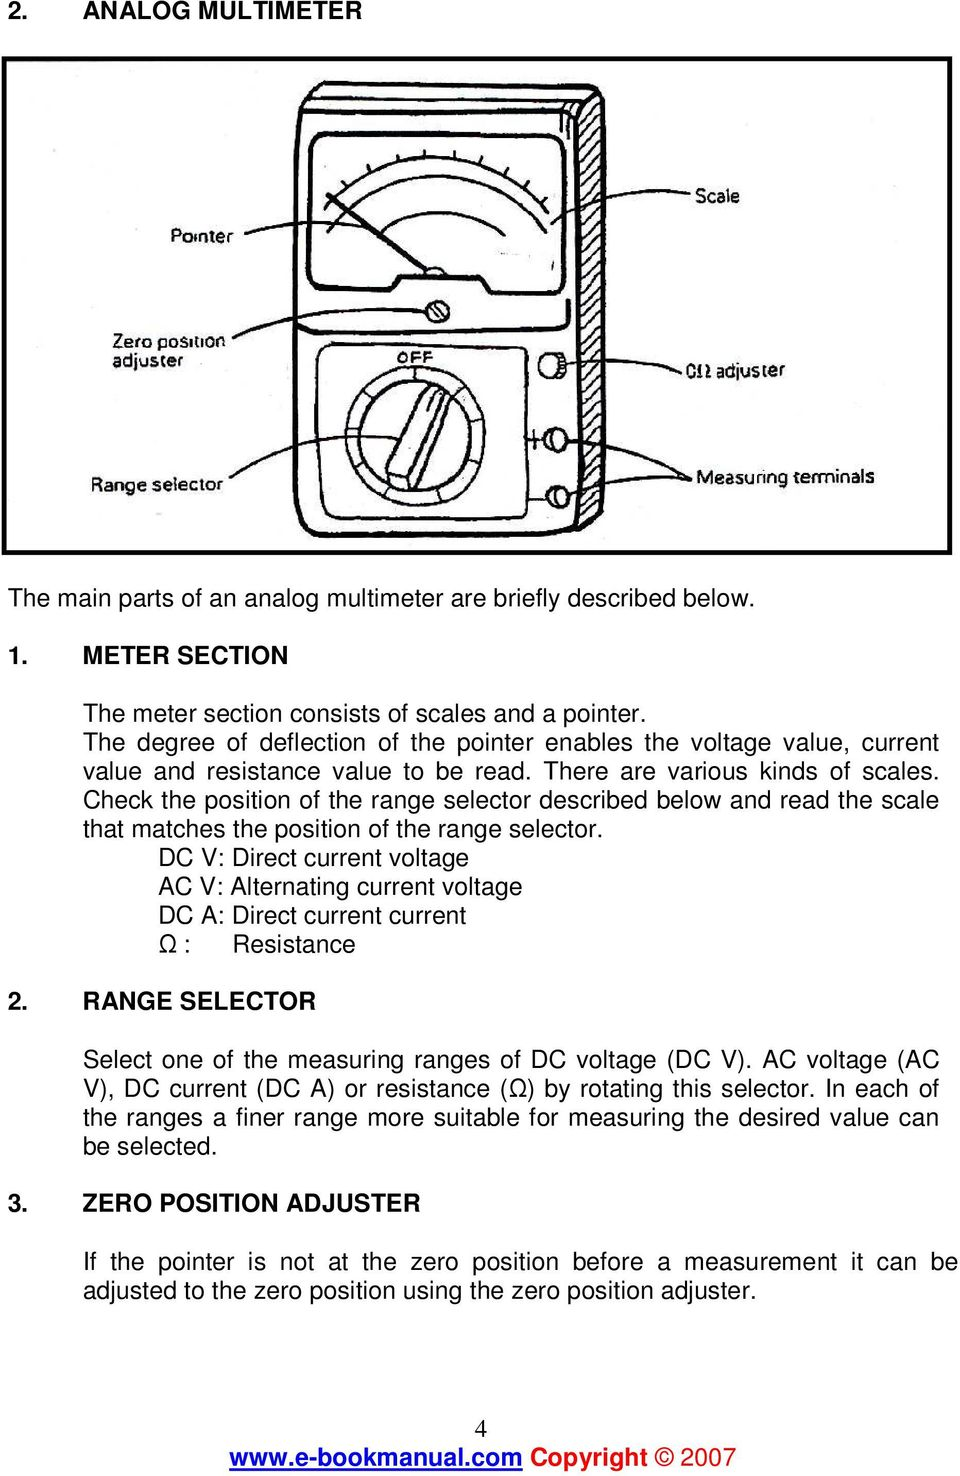 Check the position of the range selector described below and read the scale that matches the position of the range selector.